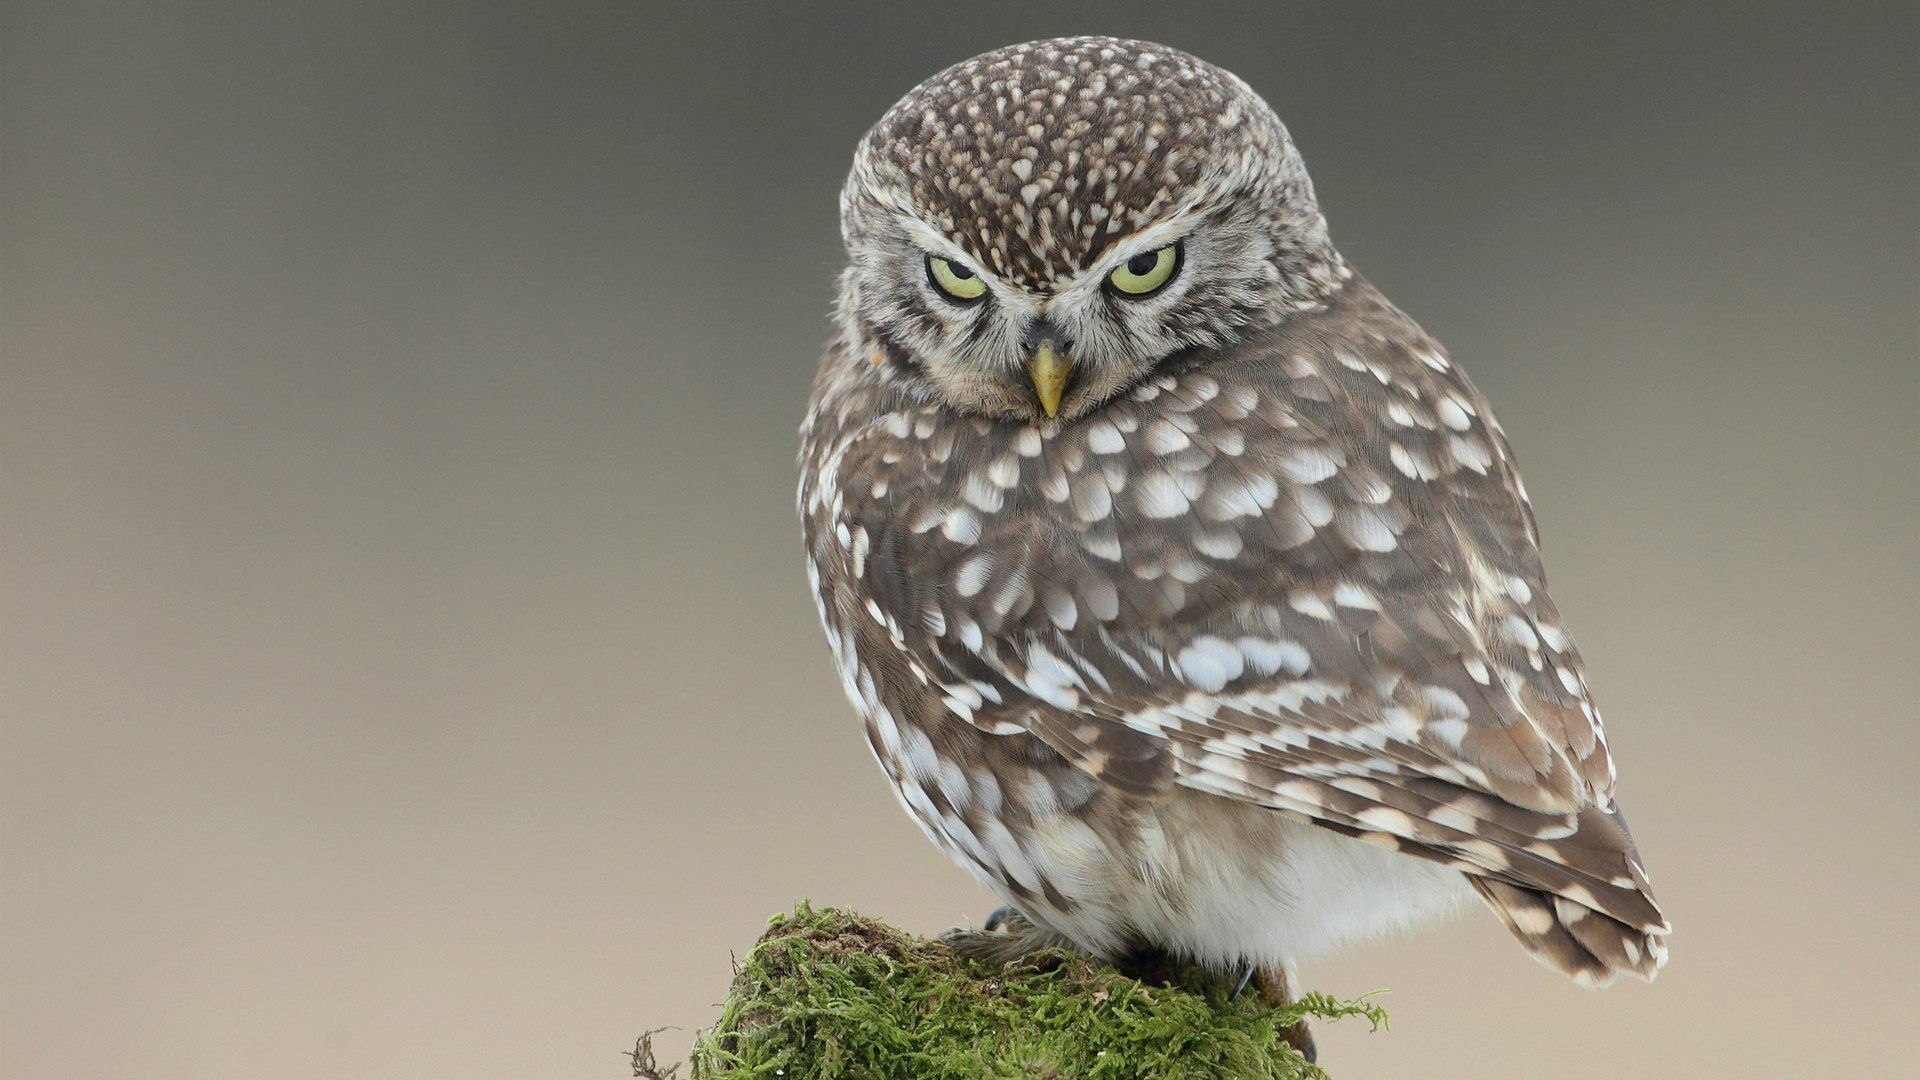 Beautiful Pictures Of The Owlets